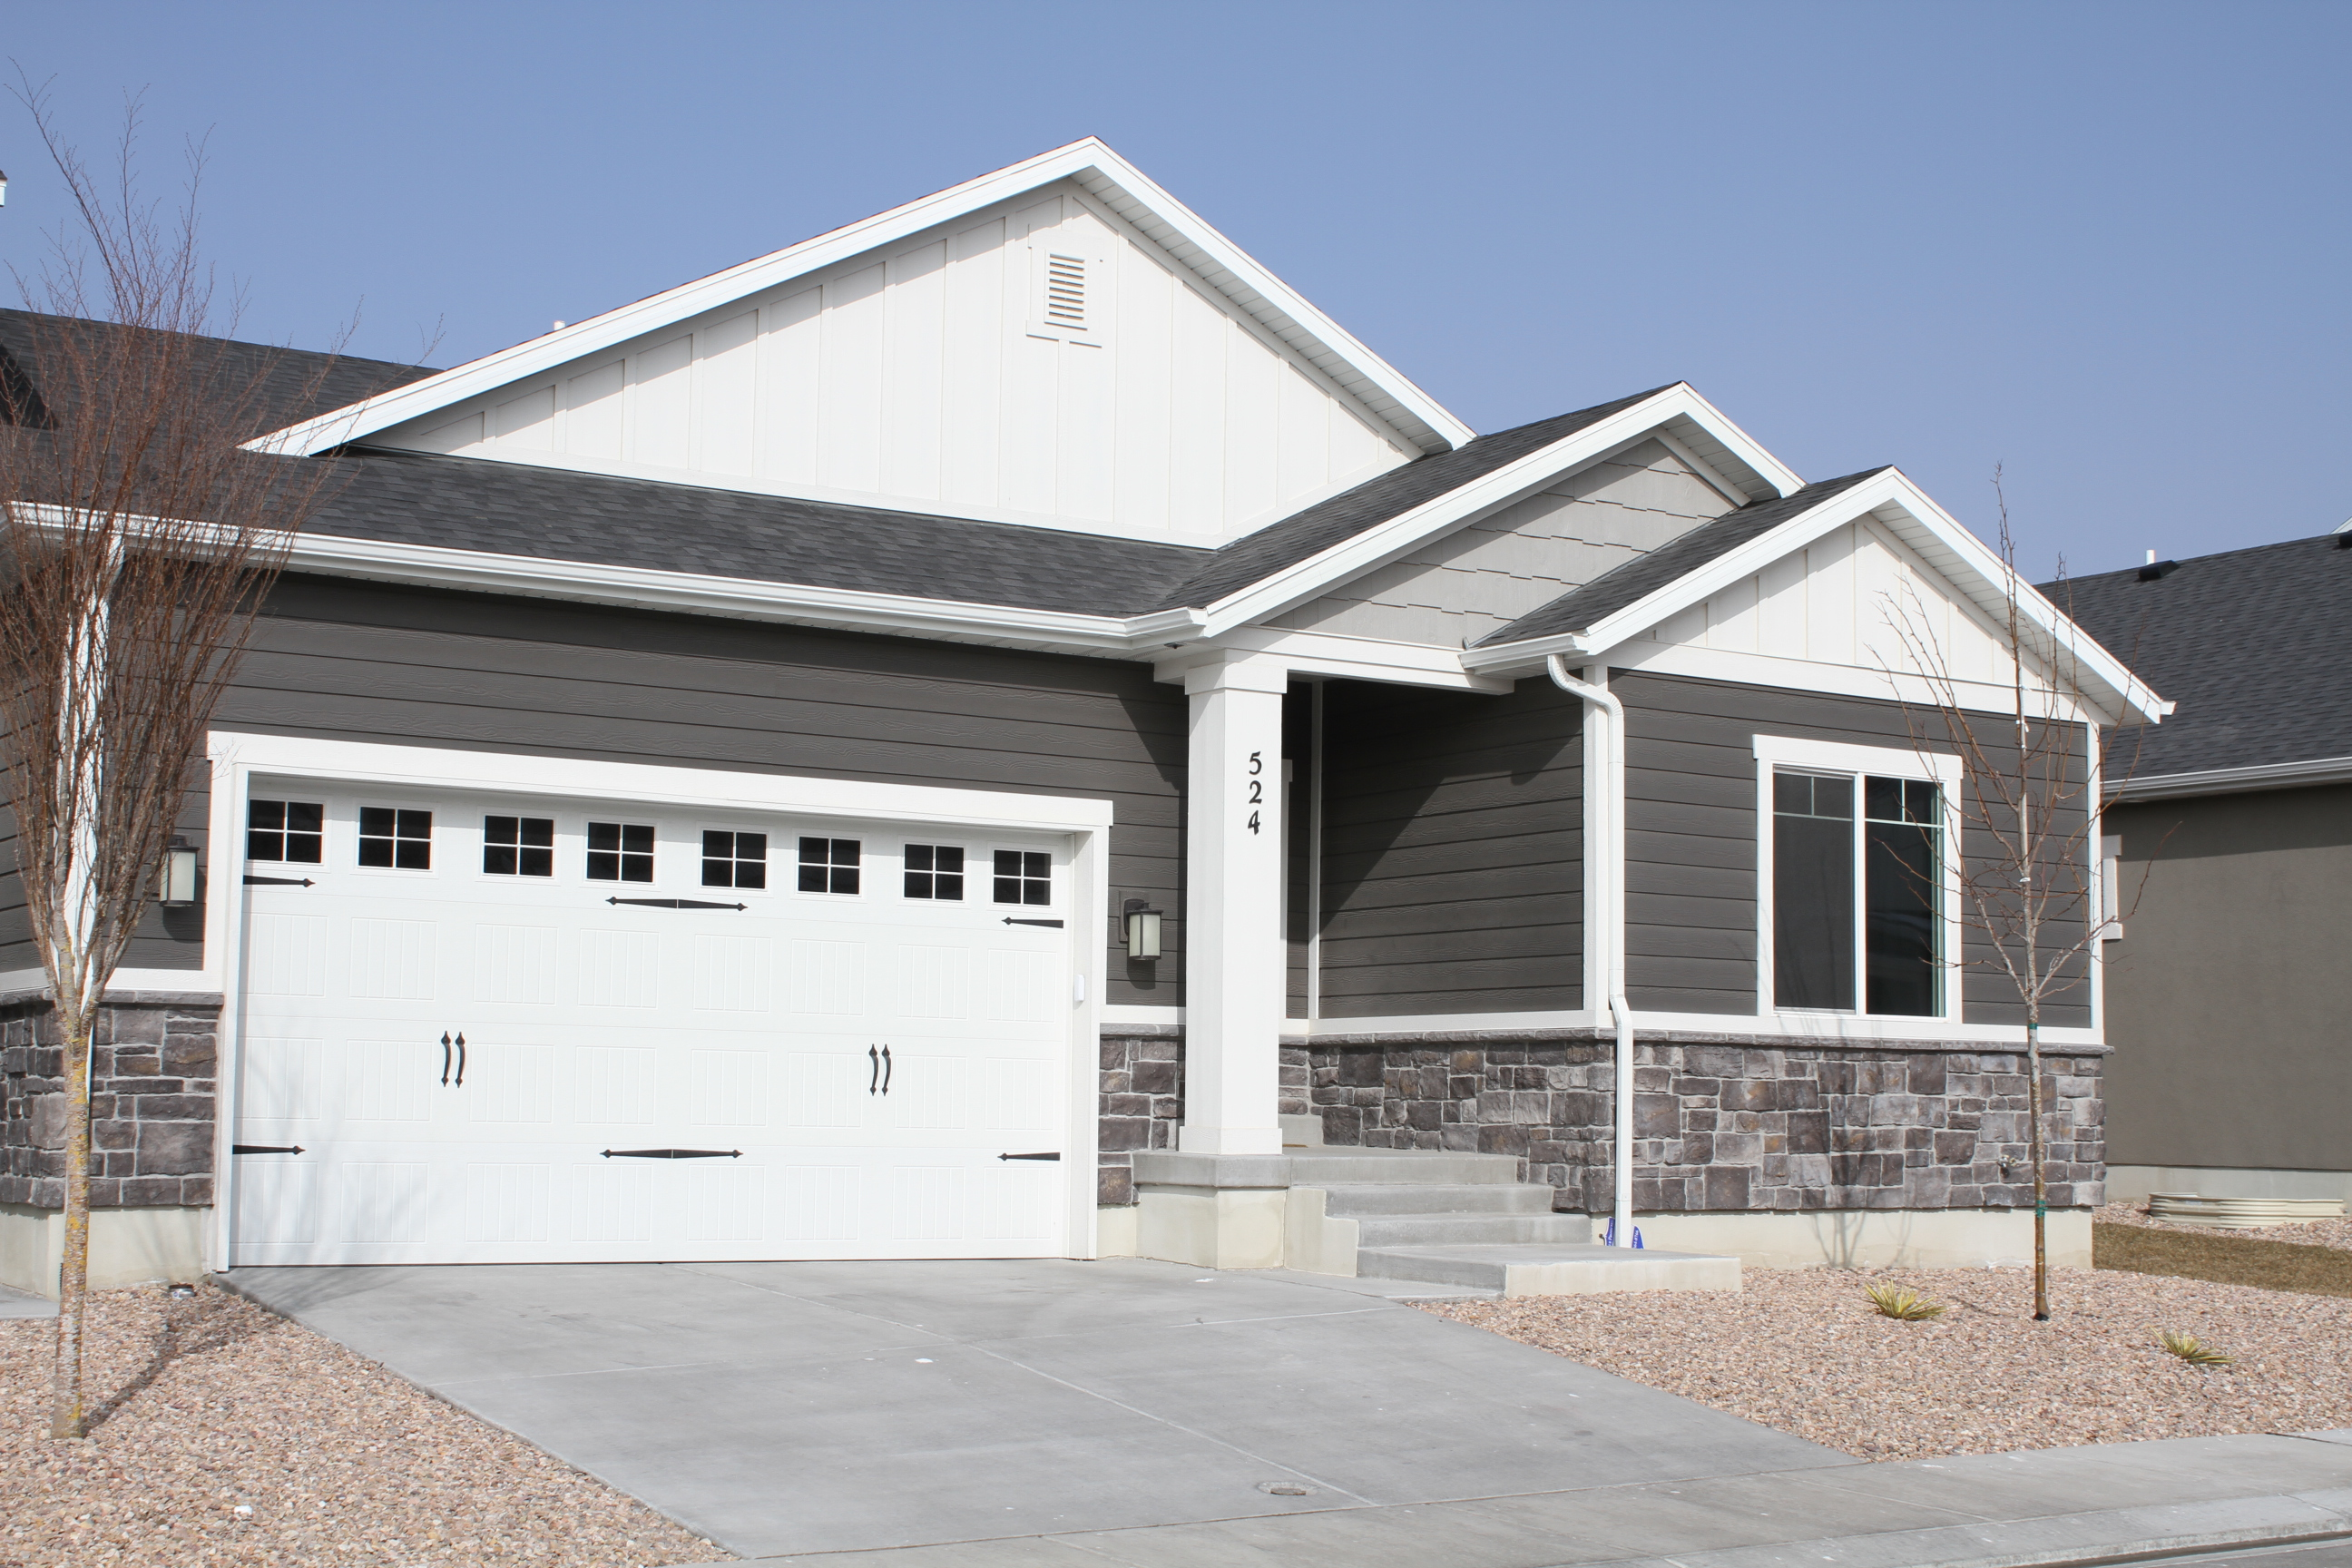 New homes being built in utah county homemade ftempo for Punch professional home design suite platinum v12